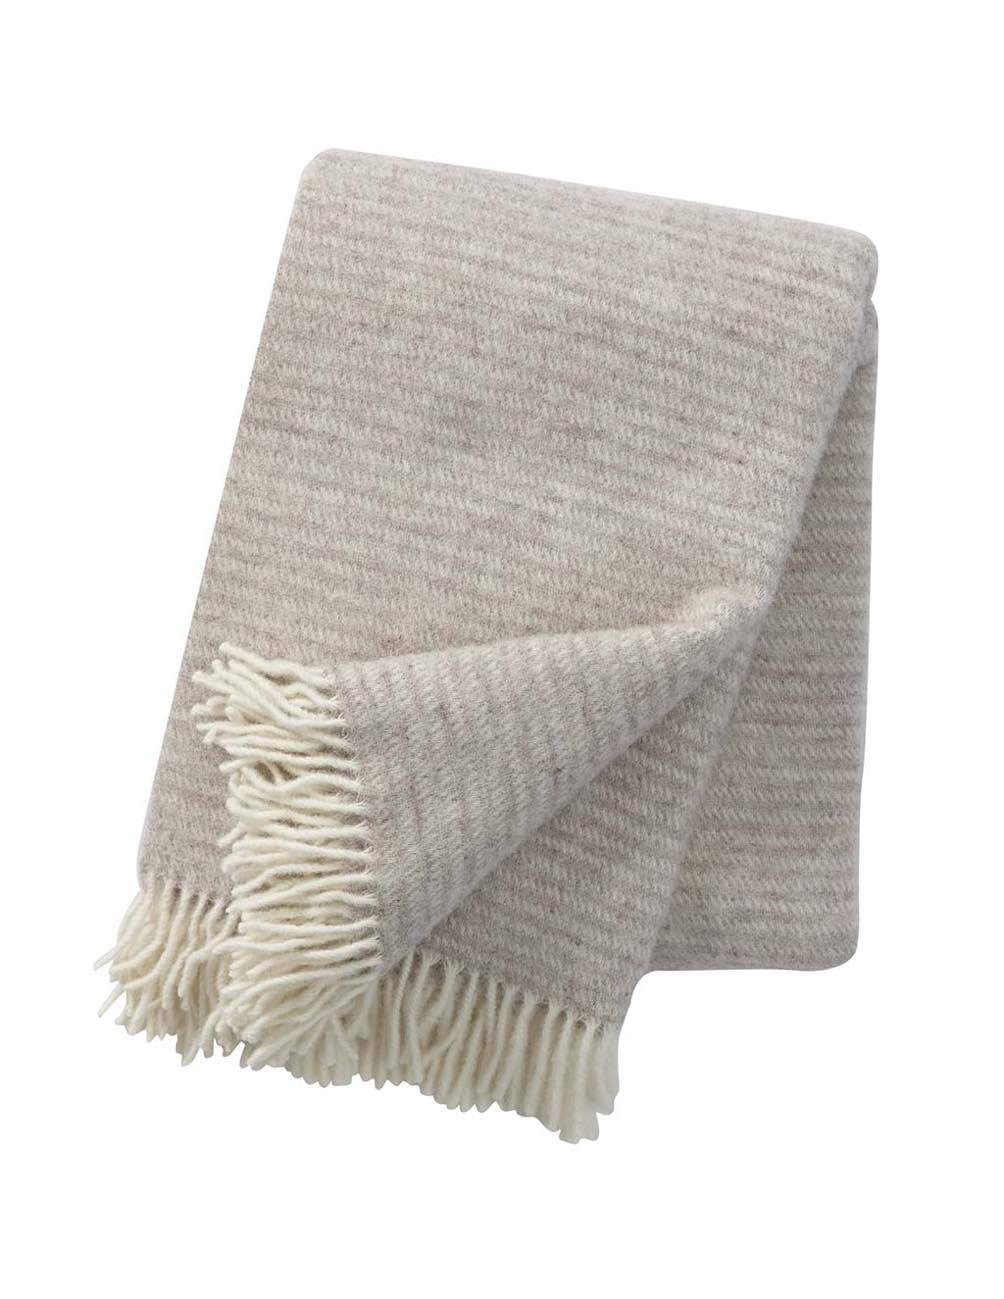 Ralph Nature Beige Blanket/Throw